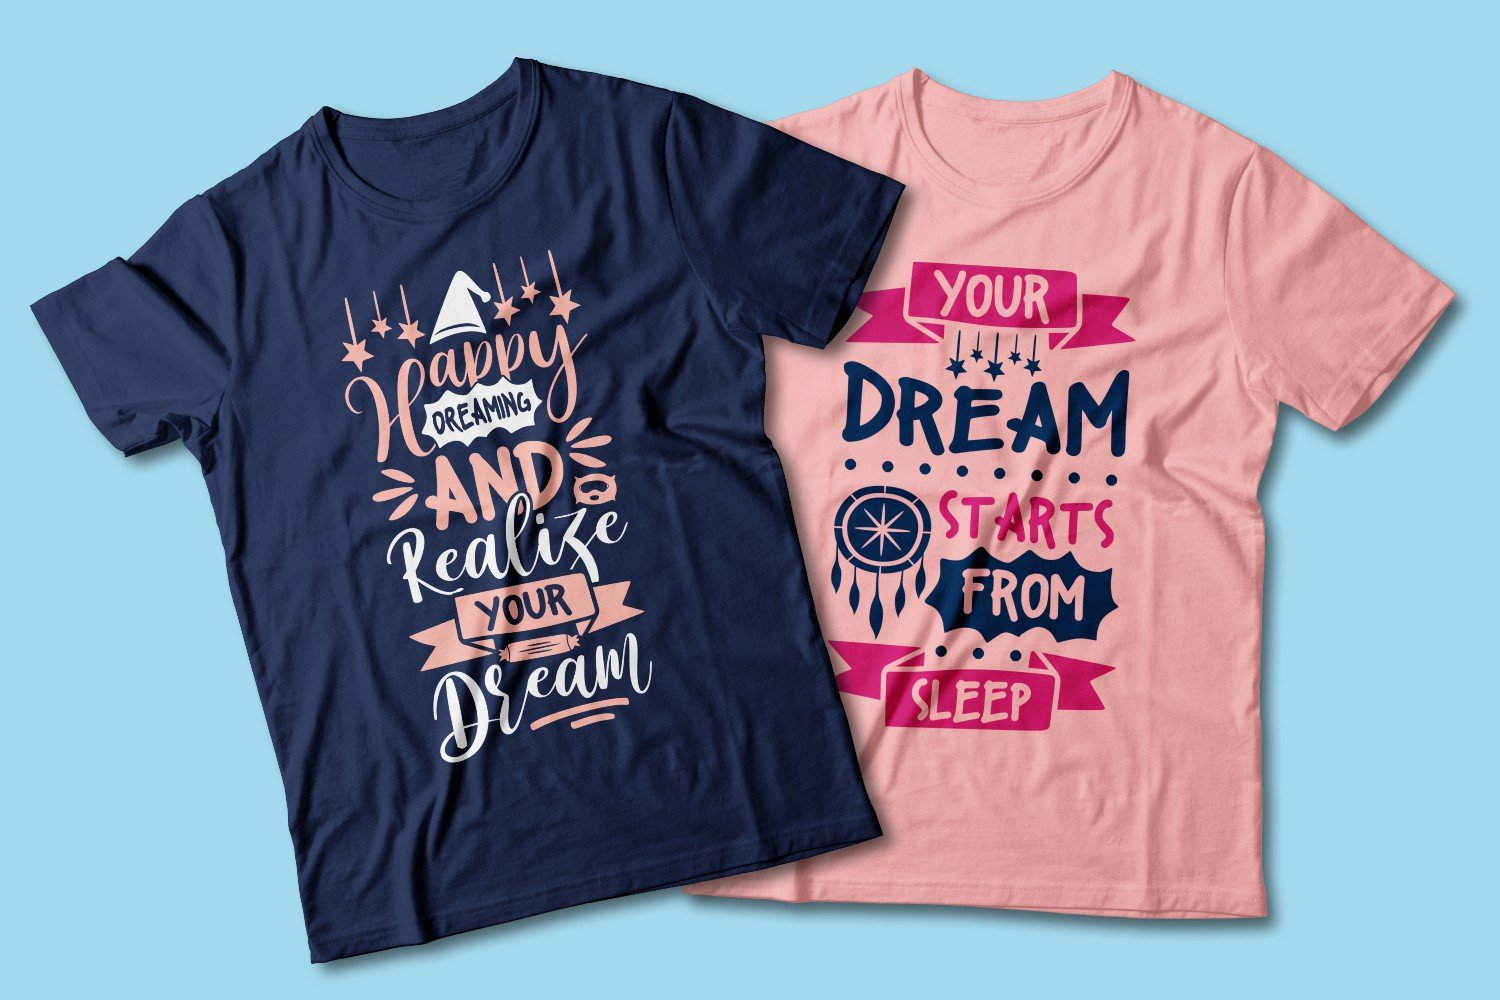 Blue and pink T-shirts with dreamcatcher graphics and captions.